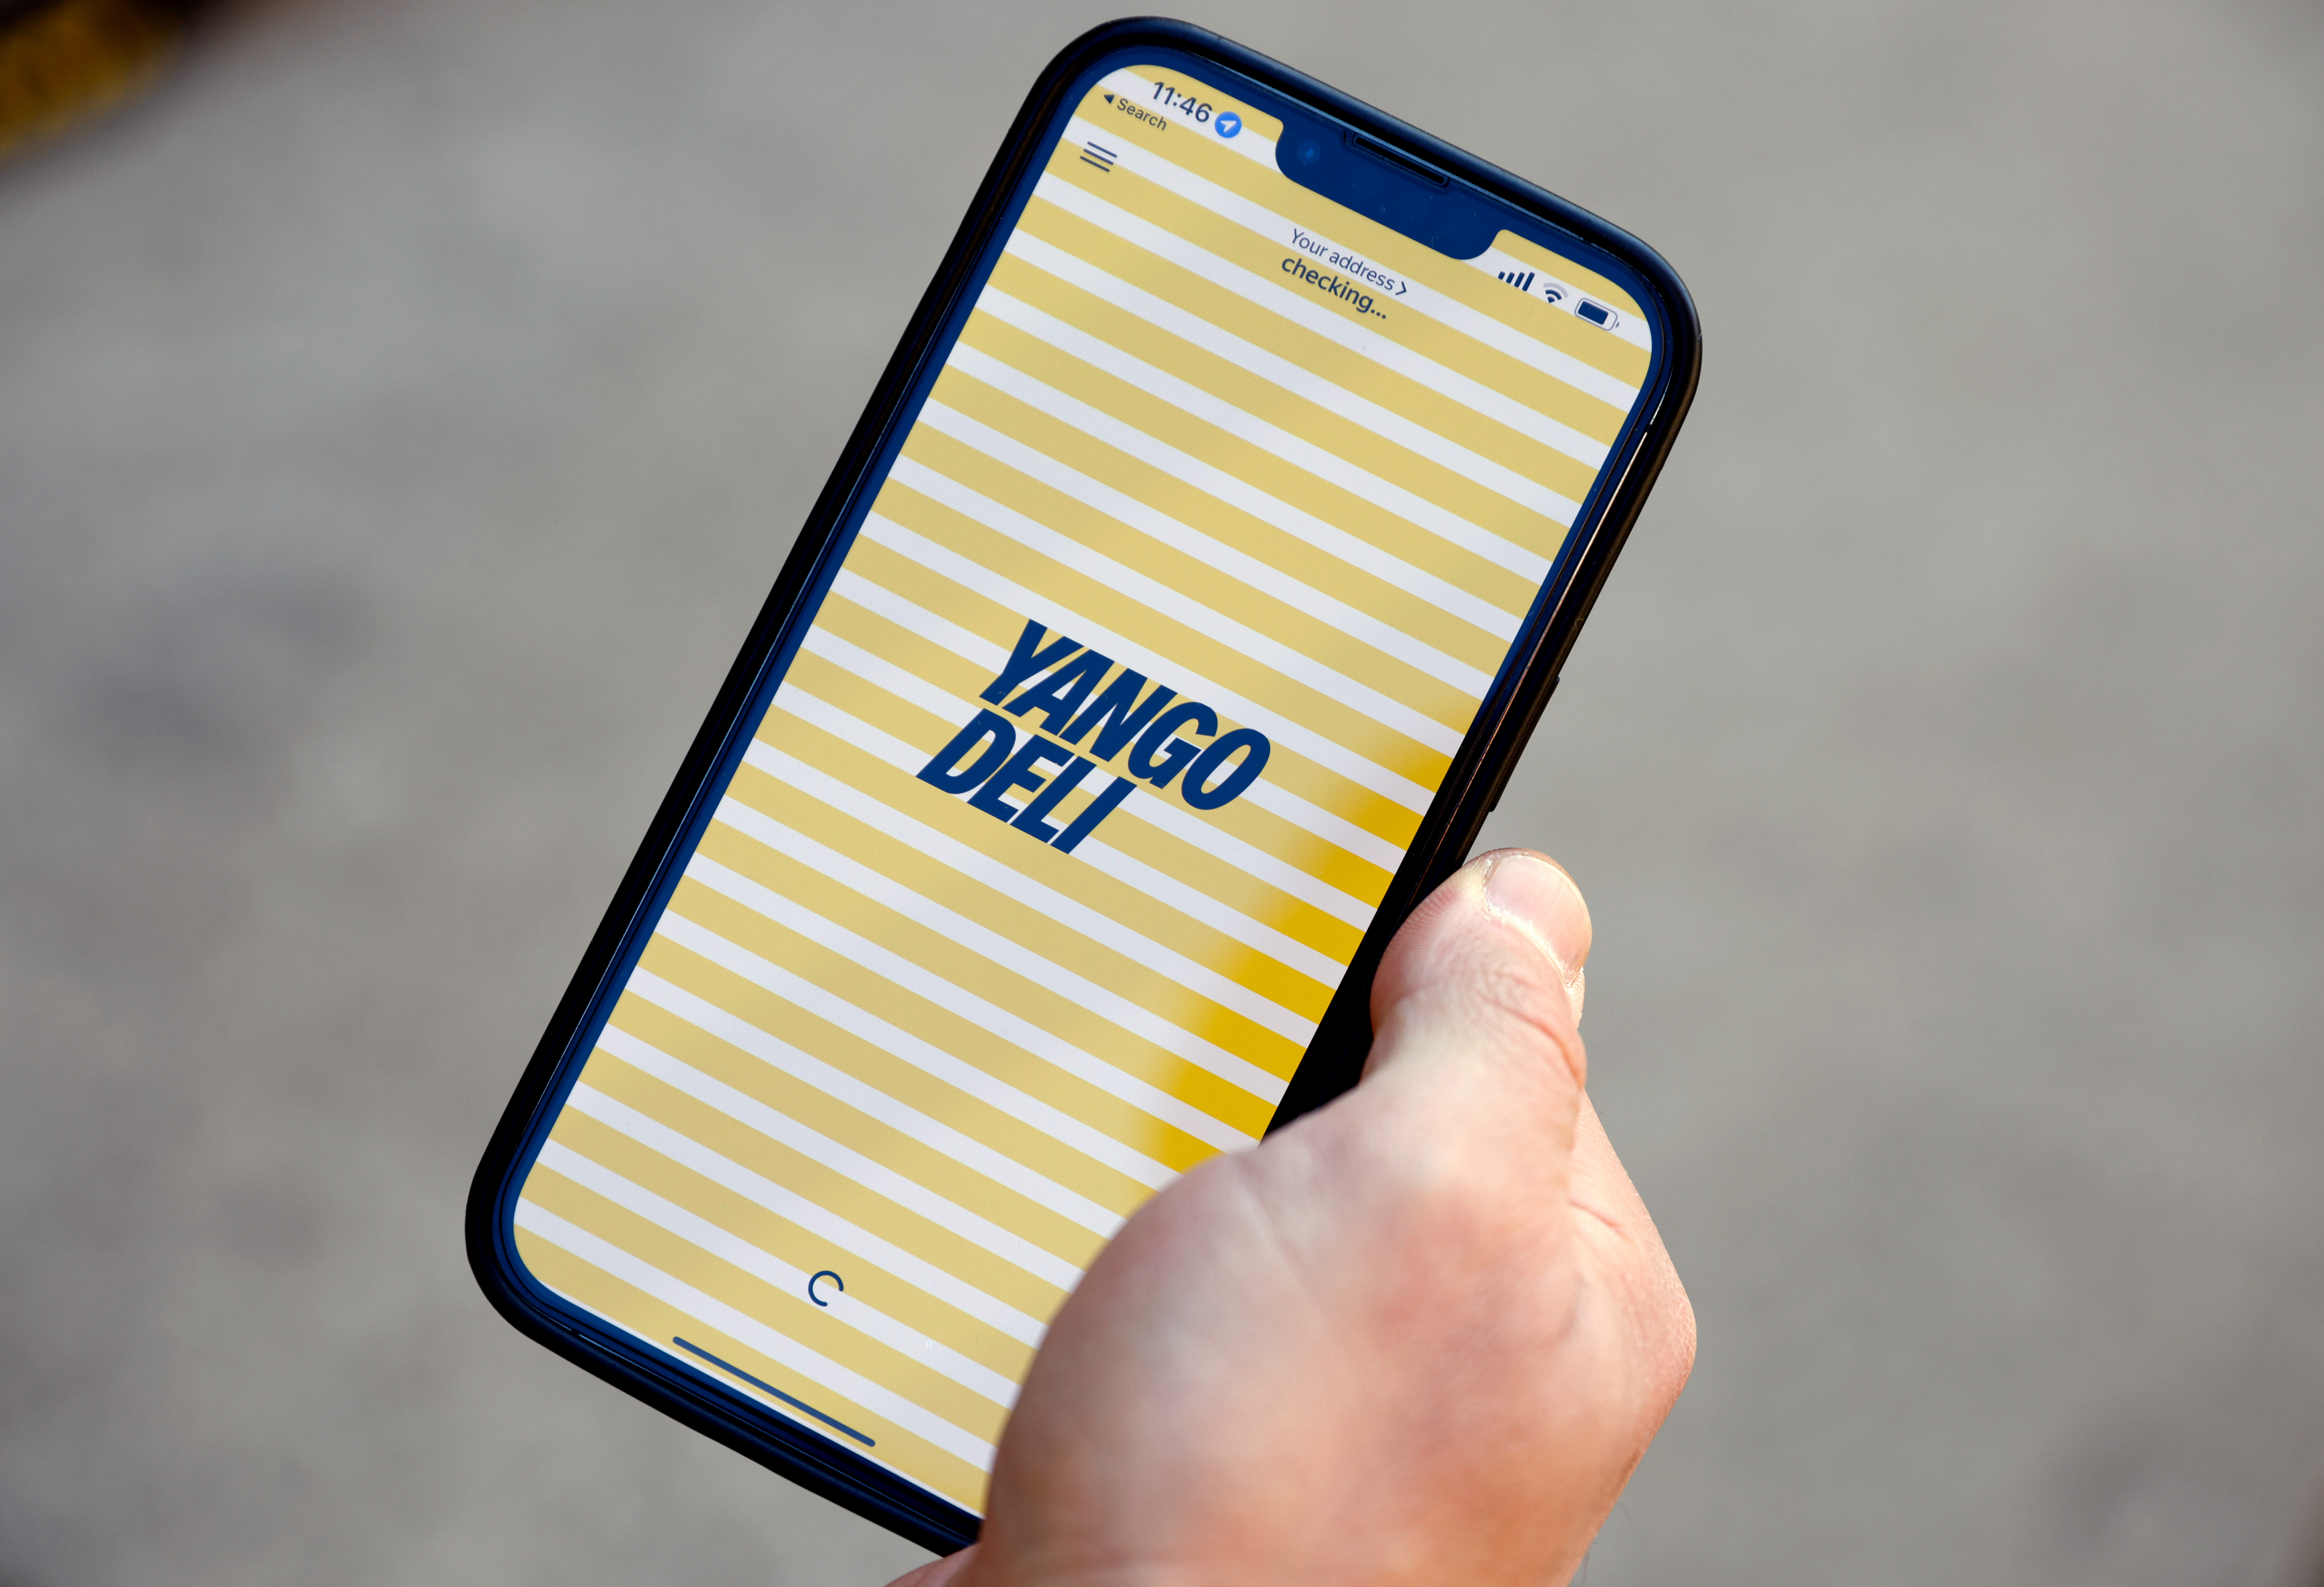 The logo of Yango Deli is seen on a smart phone app prior to the opening of their new store in London, Britain, October 6, 2021. Picture taken October 6, 2021. REUTERS/John Sibley